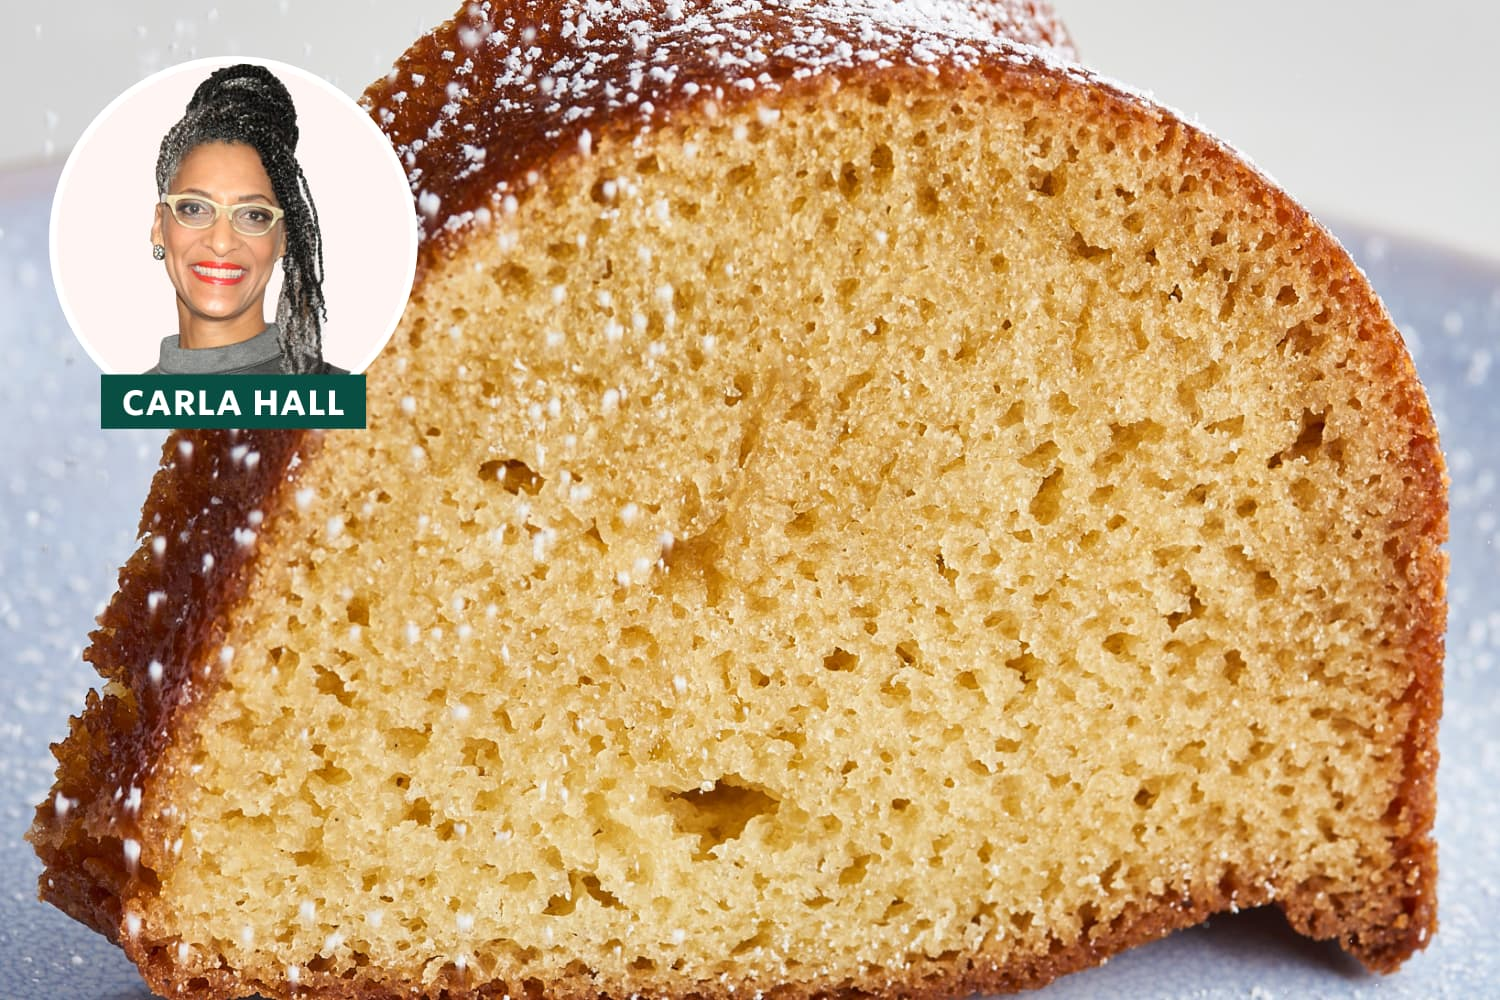 I Tried Carla Hall's Five-Flavor Pound Cake (It's One of Her Family's Favorite Desserts)